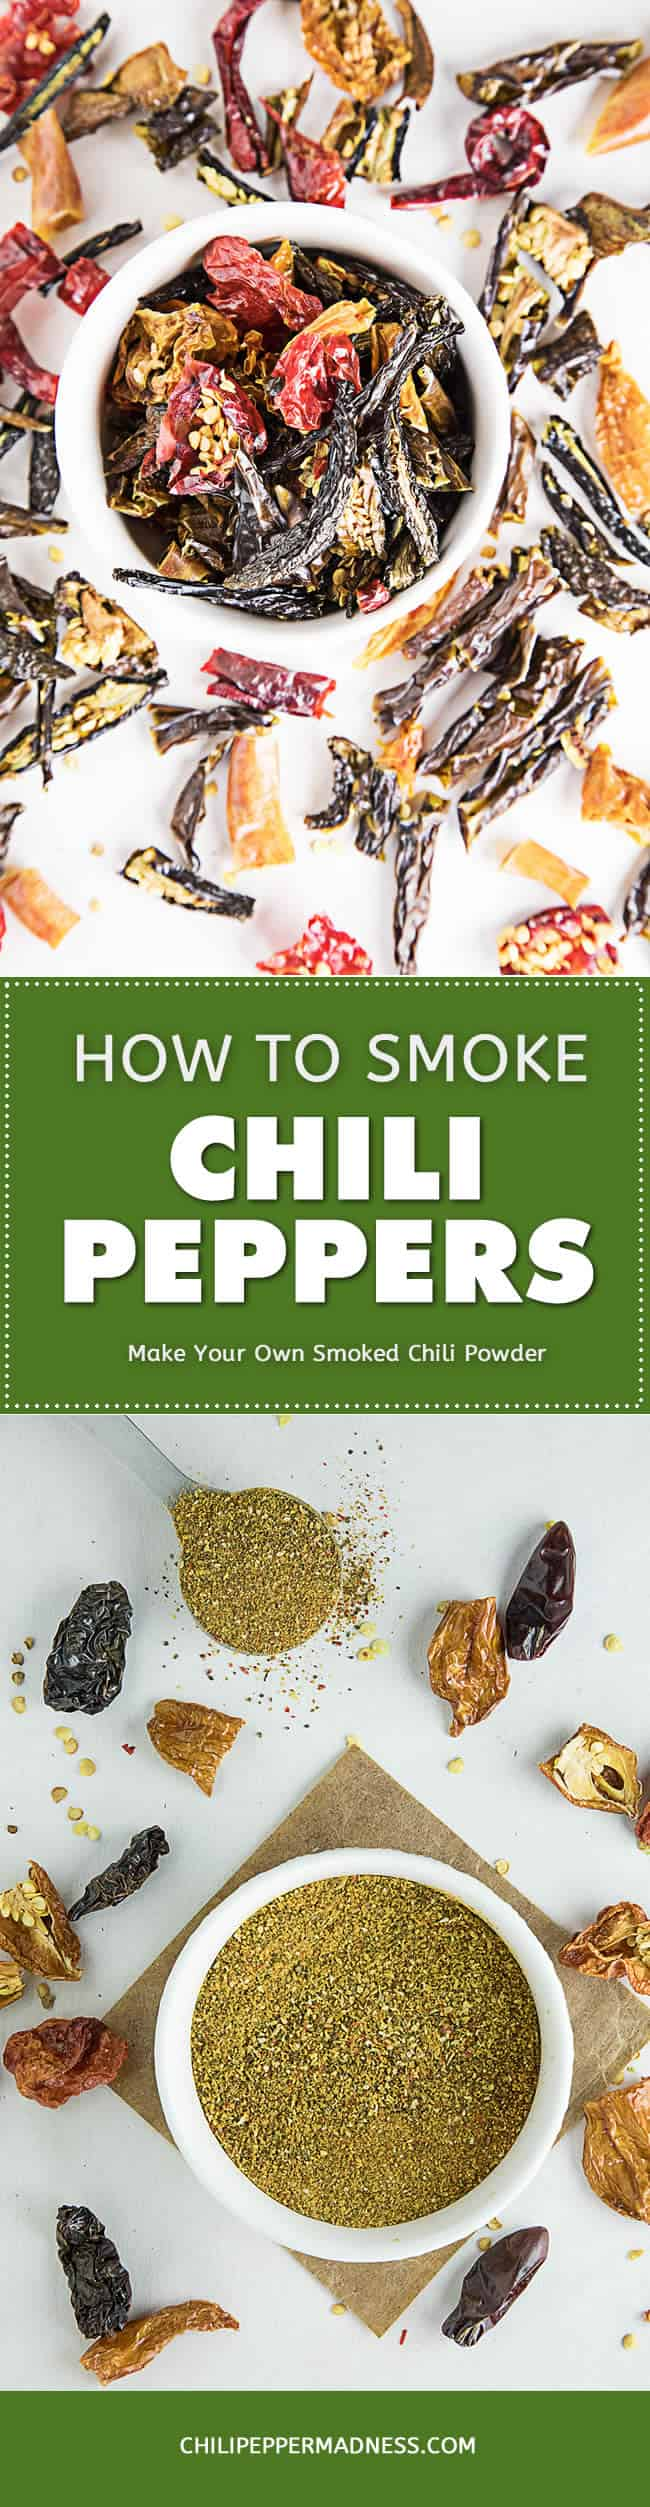 how to Smoke Chili Peppers - Recipe